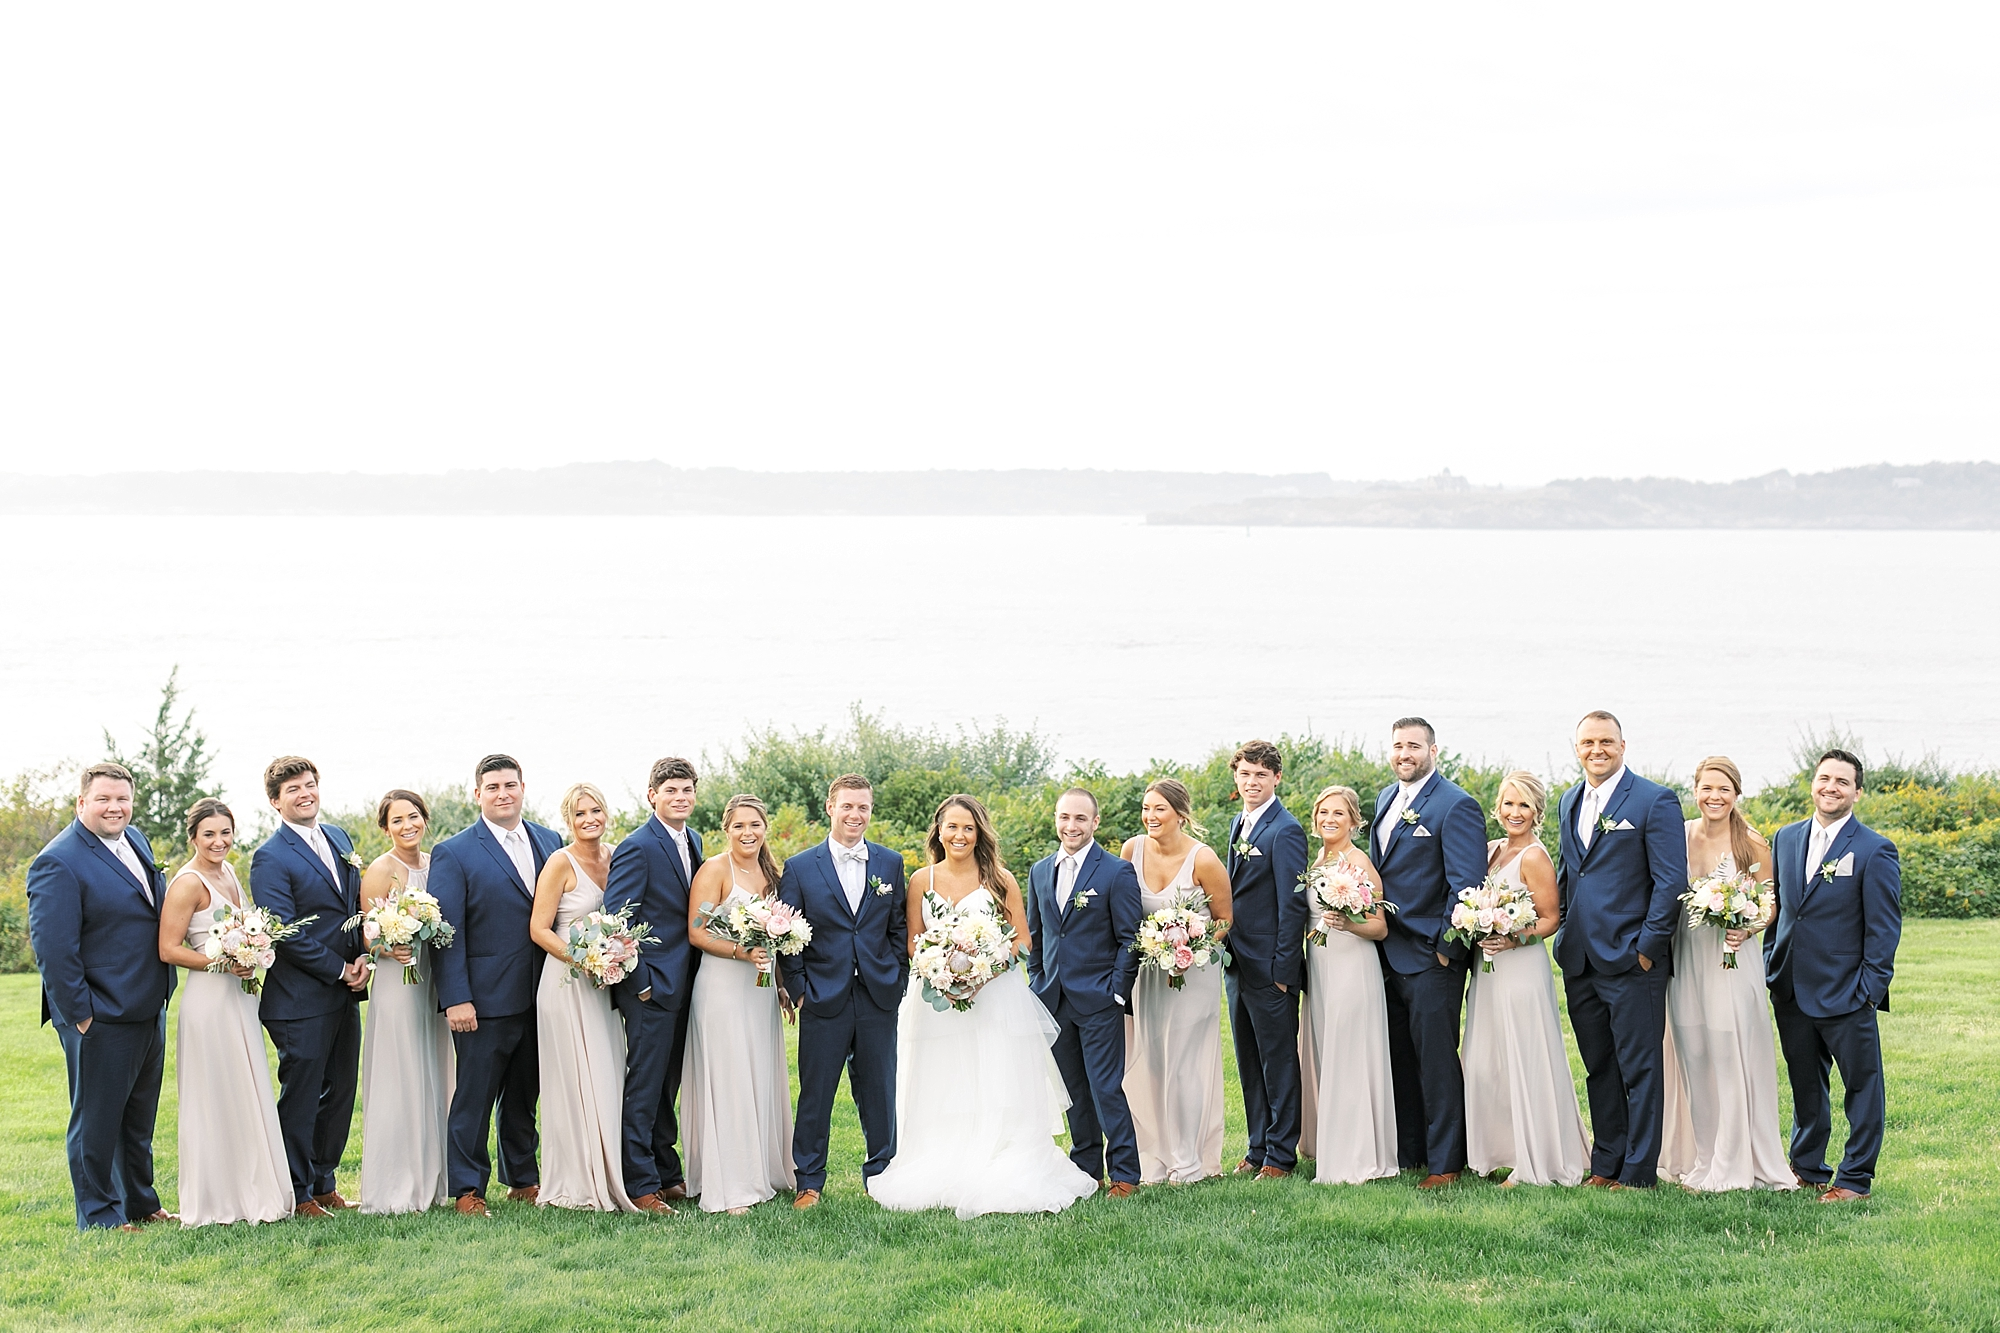 Coastal and Authentic Film Wedding Photography in Newport Rhode Island by Magdalena Studios 0054